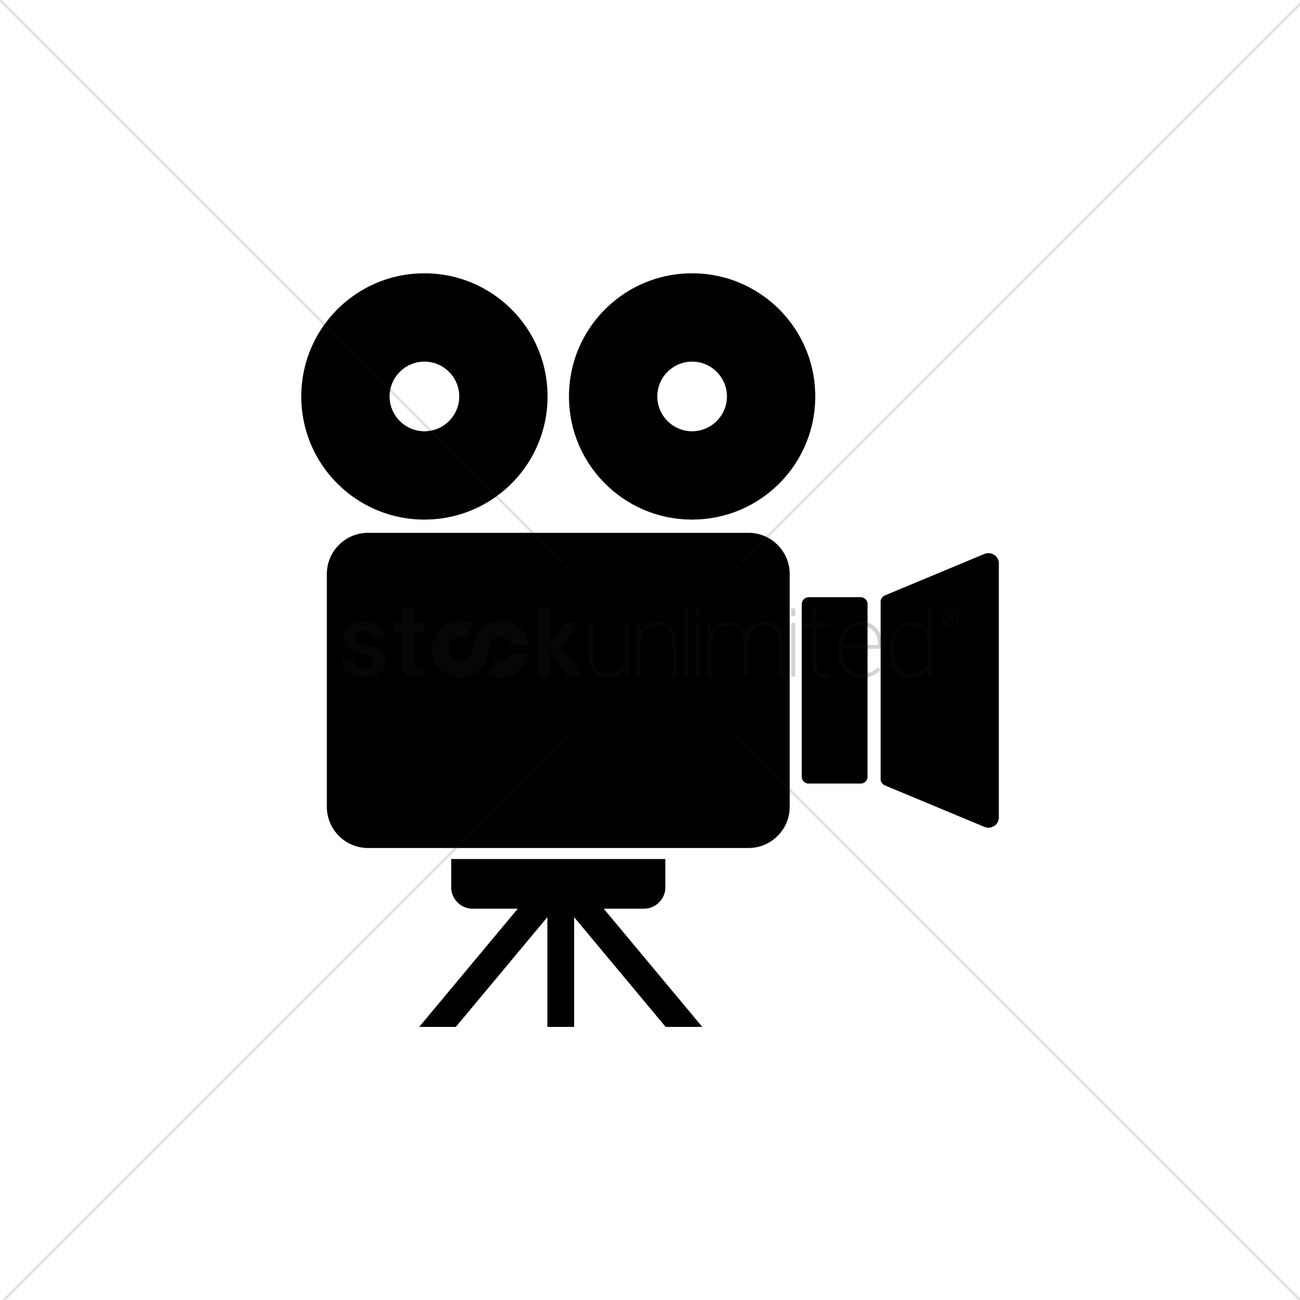 Video Camera Icon Vector Graphic-video camera icon vector graphic-15